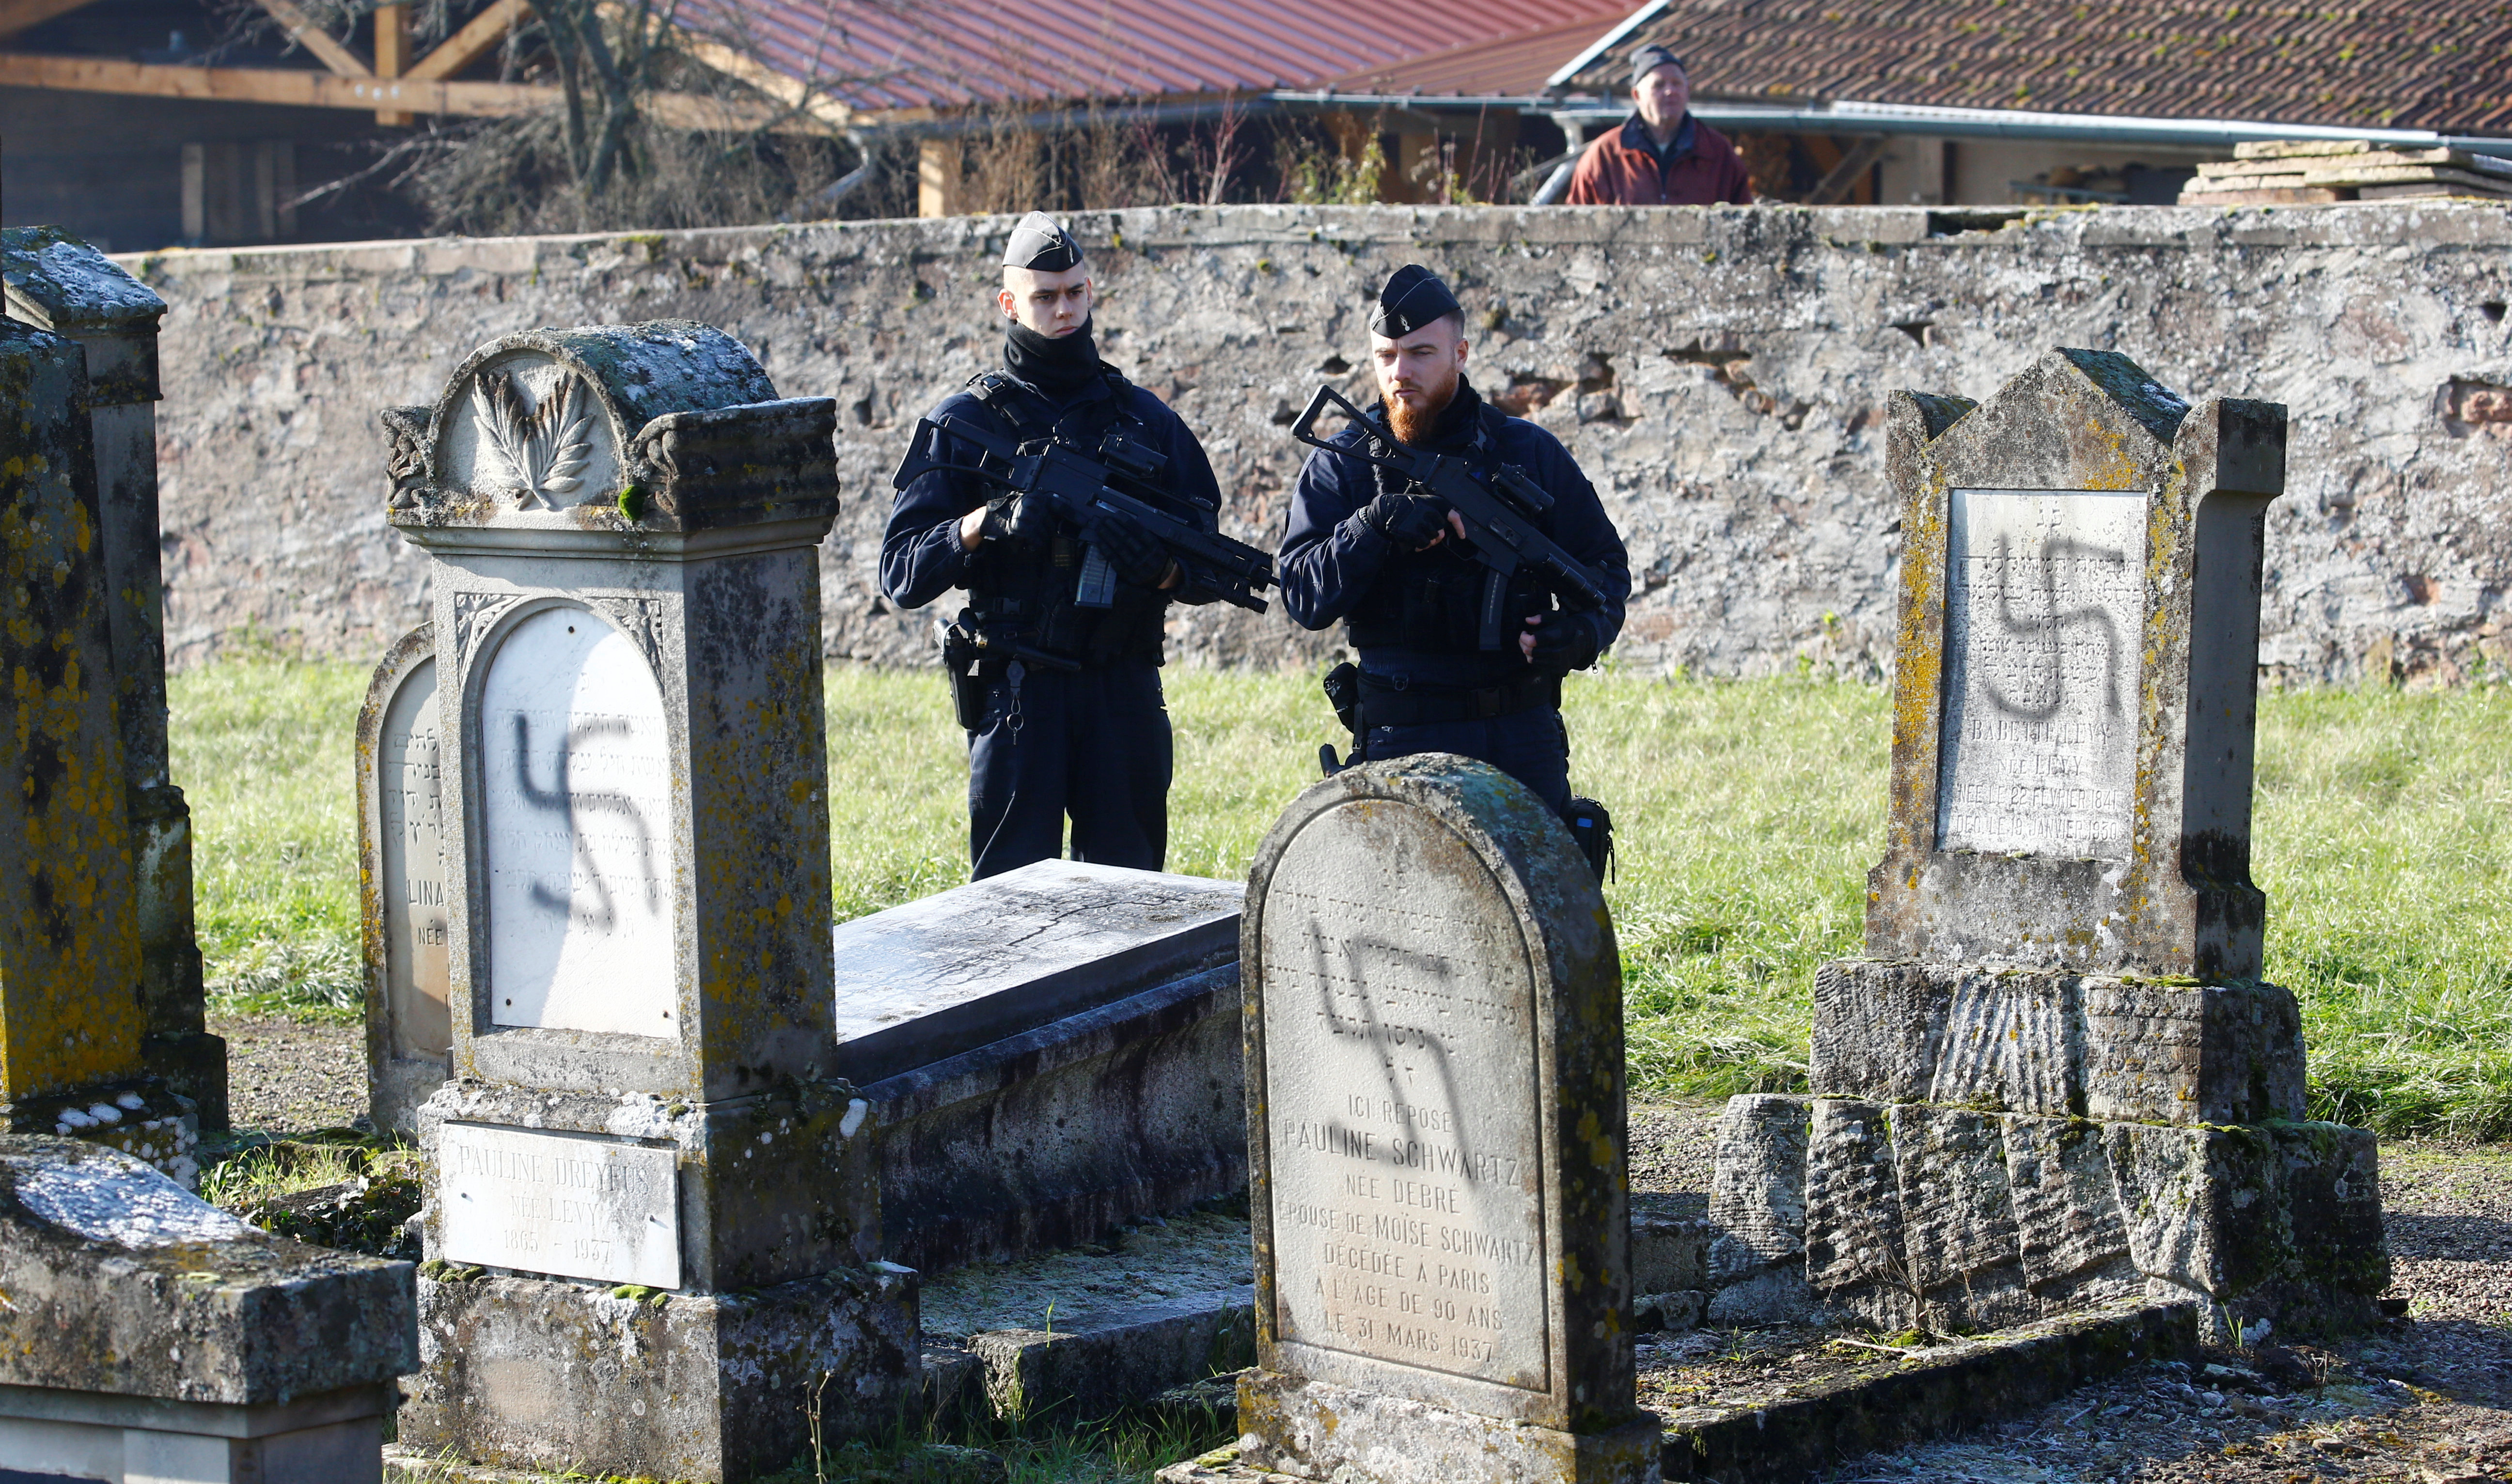 French police officers stand behind graves desecrated with swastikas at the Jewish cemetery in Westhoffen, near Strasbourg, France, December 4, 2019. (REUTERS/Arnd Wiegmann)